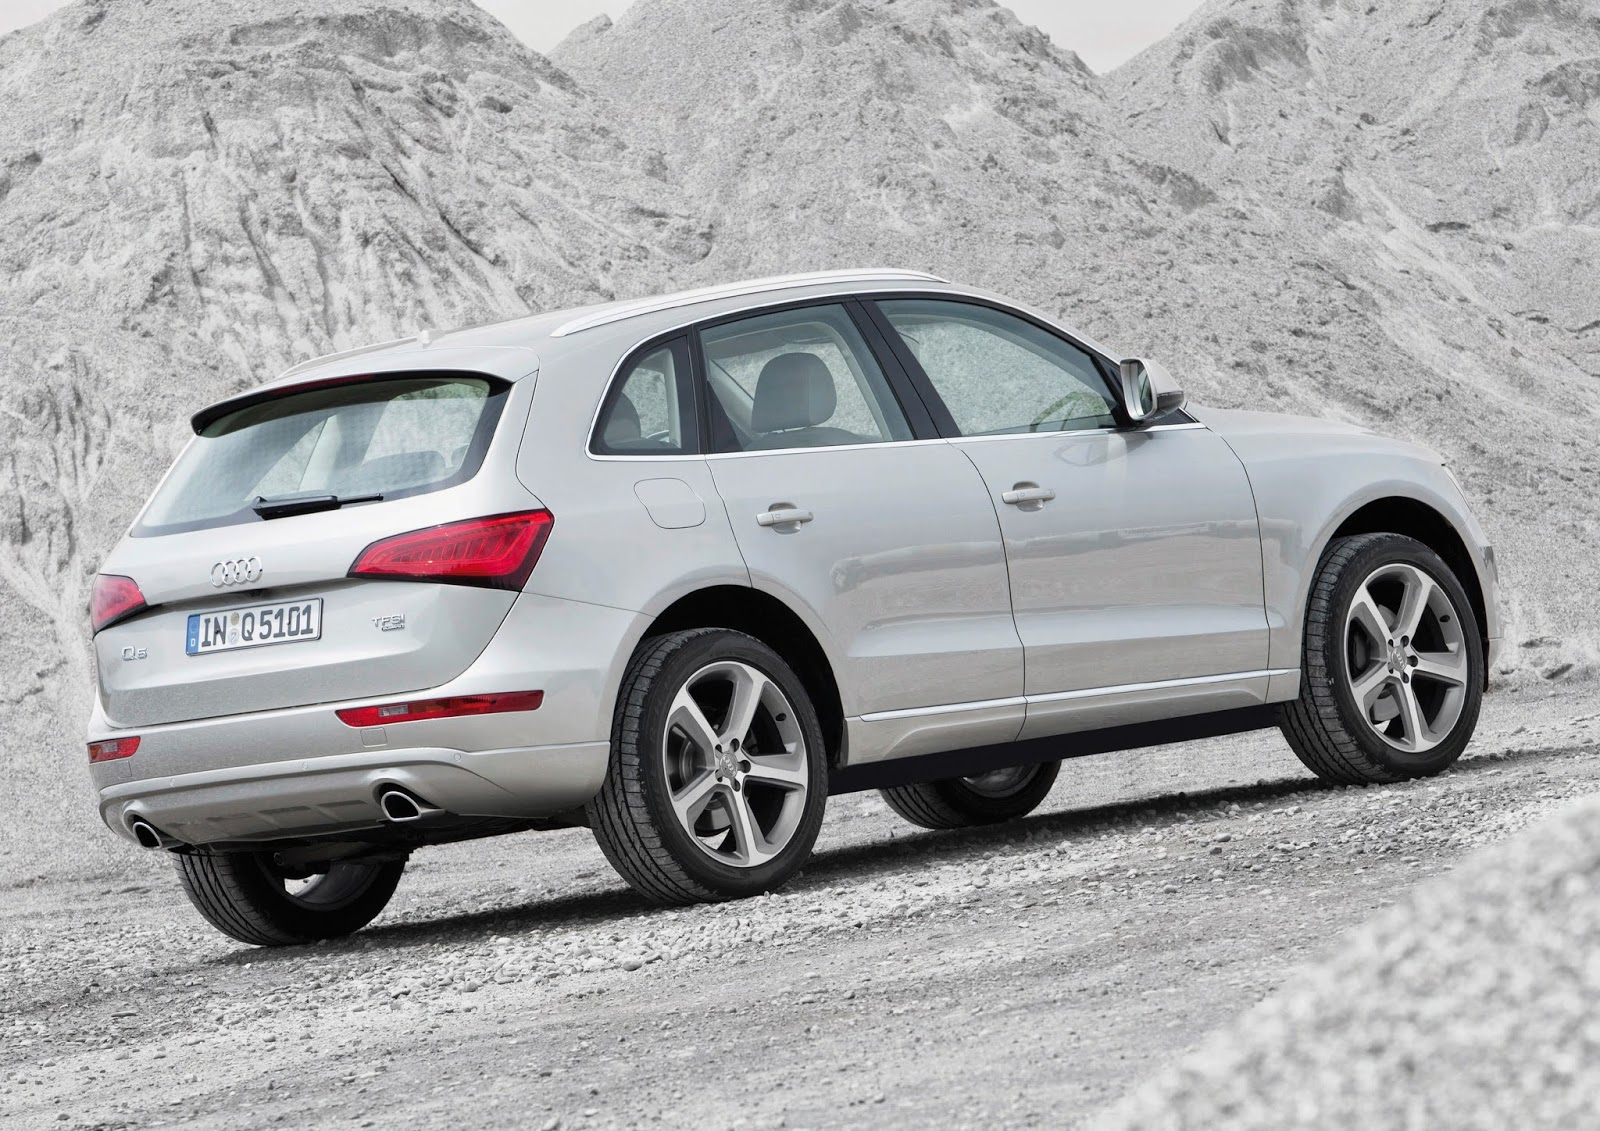 Rear three-quarters view of the 2014 Audi Q5 TDI